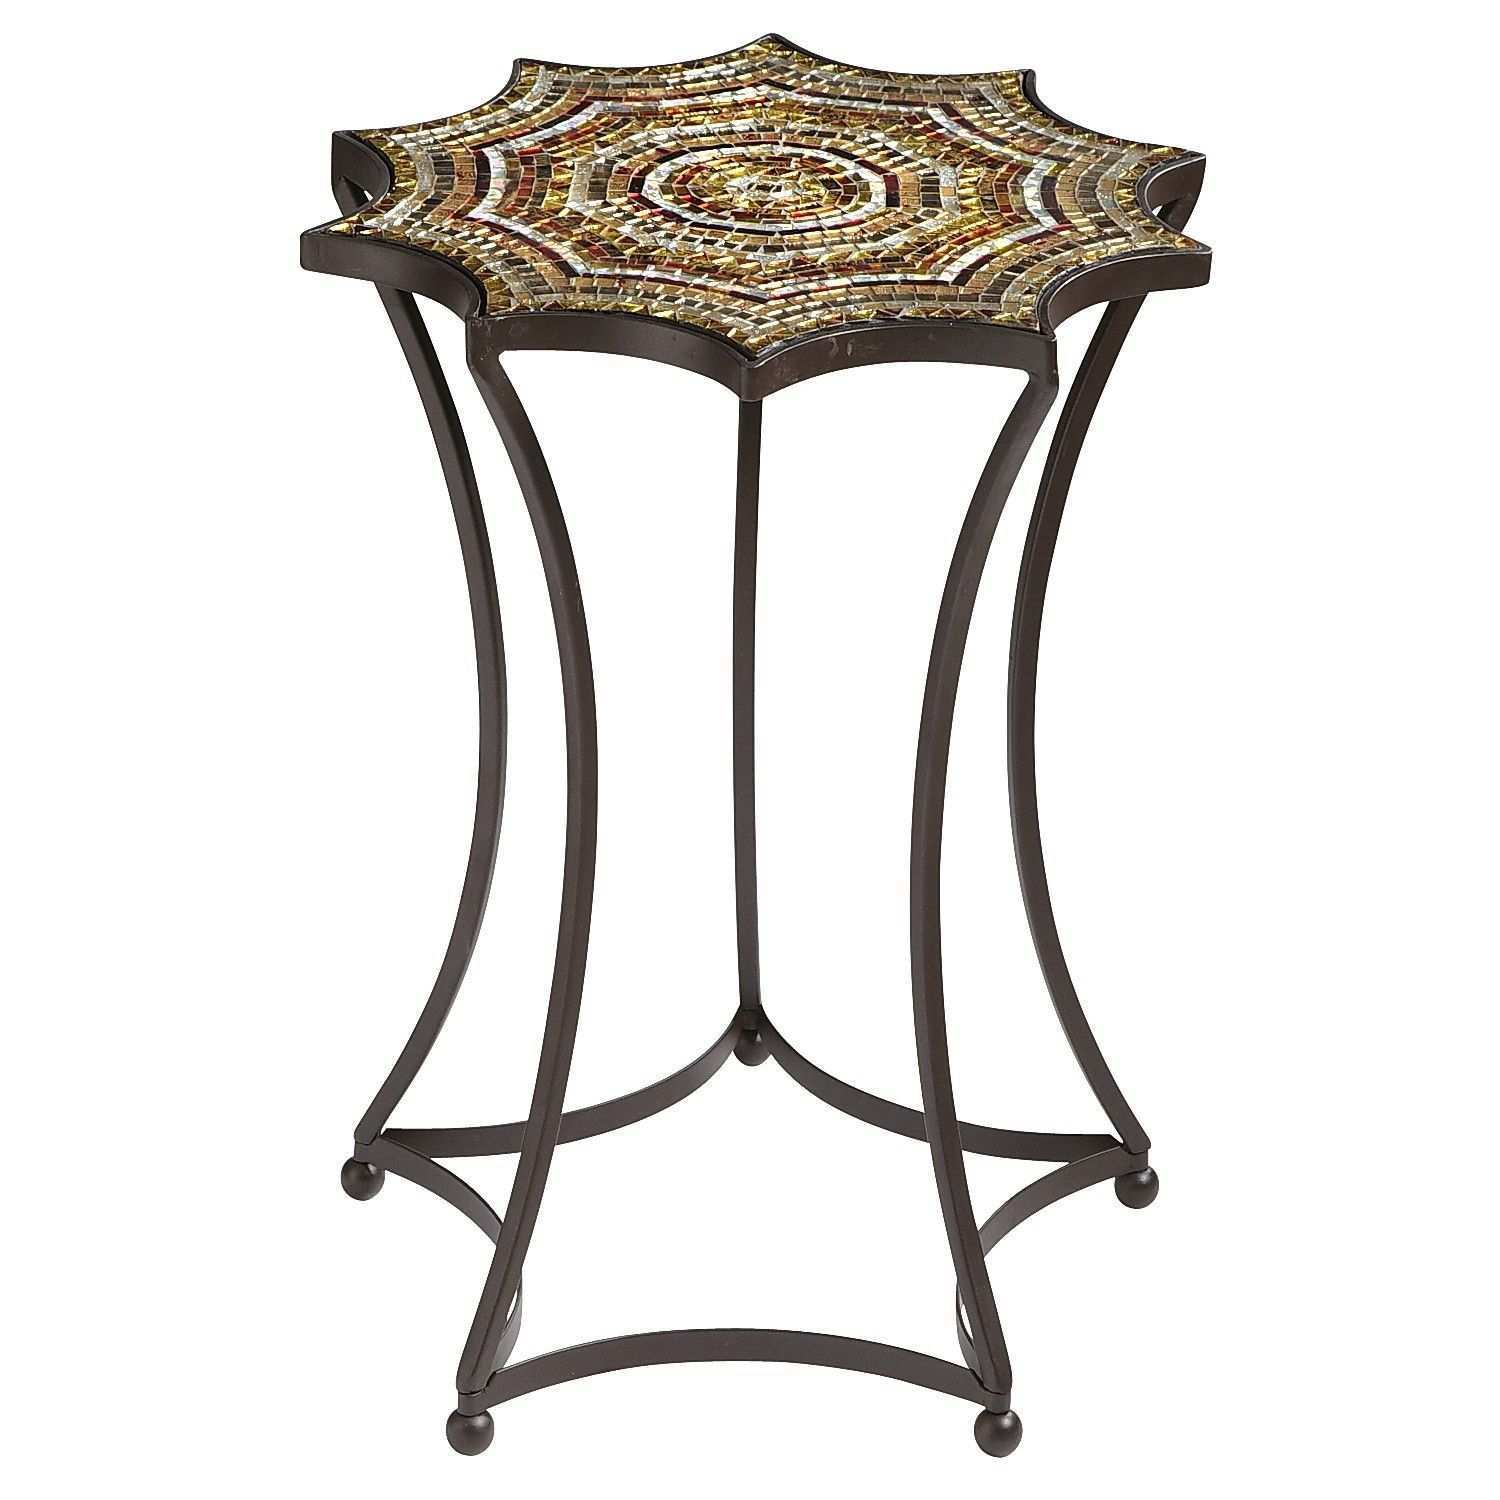 starburst mosaic accent table pier imports living room pertaining tables nautical sconces indoor lighting round dining for skirts decorator wooden bar rustic wine rack ethan allen